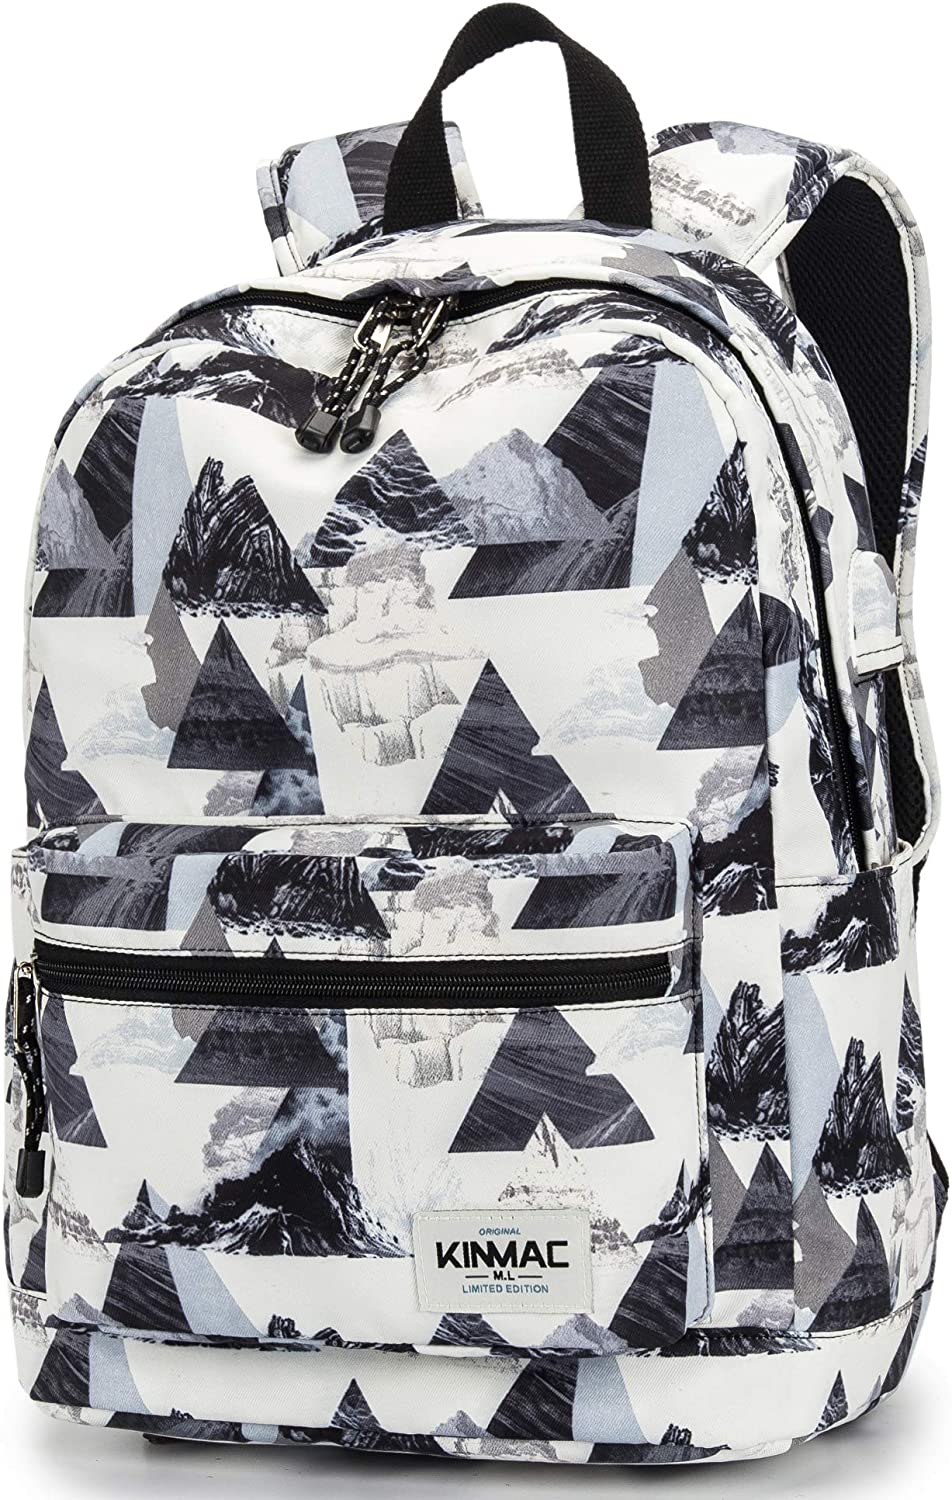 Kinmac Laptop Backpack (Large Size For 13 inch-14 inch-15.6 inch Laptop, Mountain)